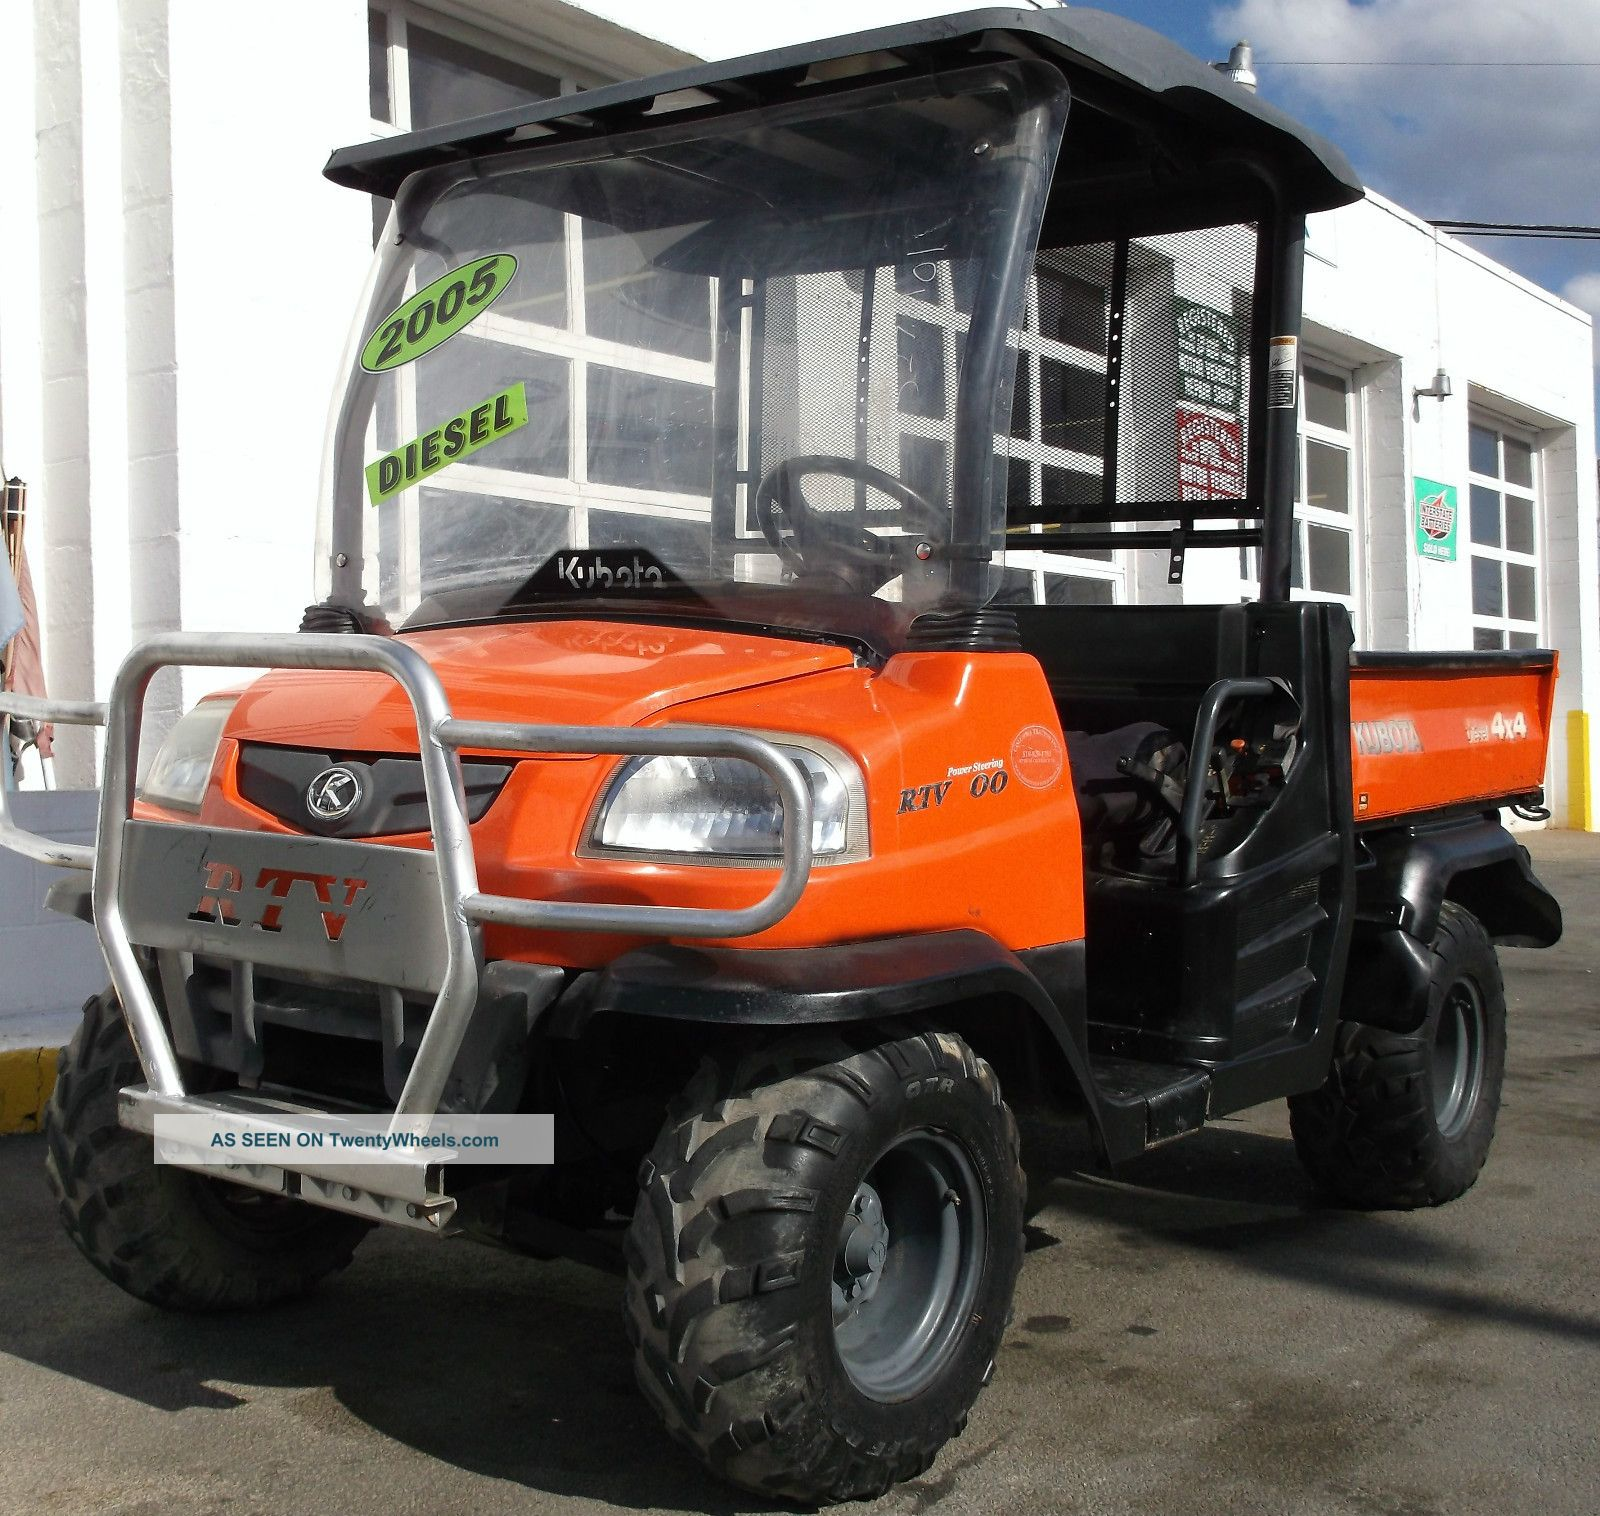 2005 Kubota Rtv 900 Diesel 4x4 Hydraulic Dump Back L@@k Watch Video Utility Vehicles photo